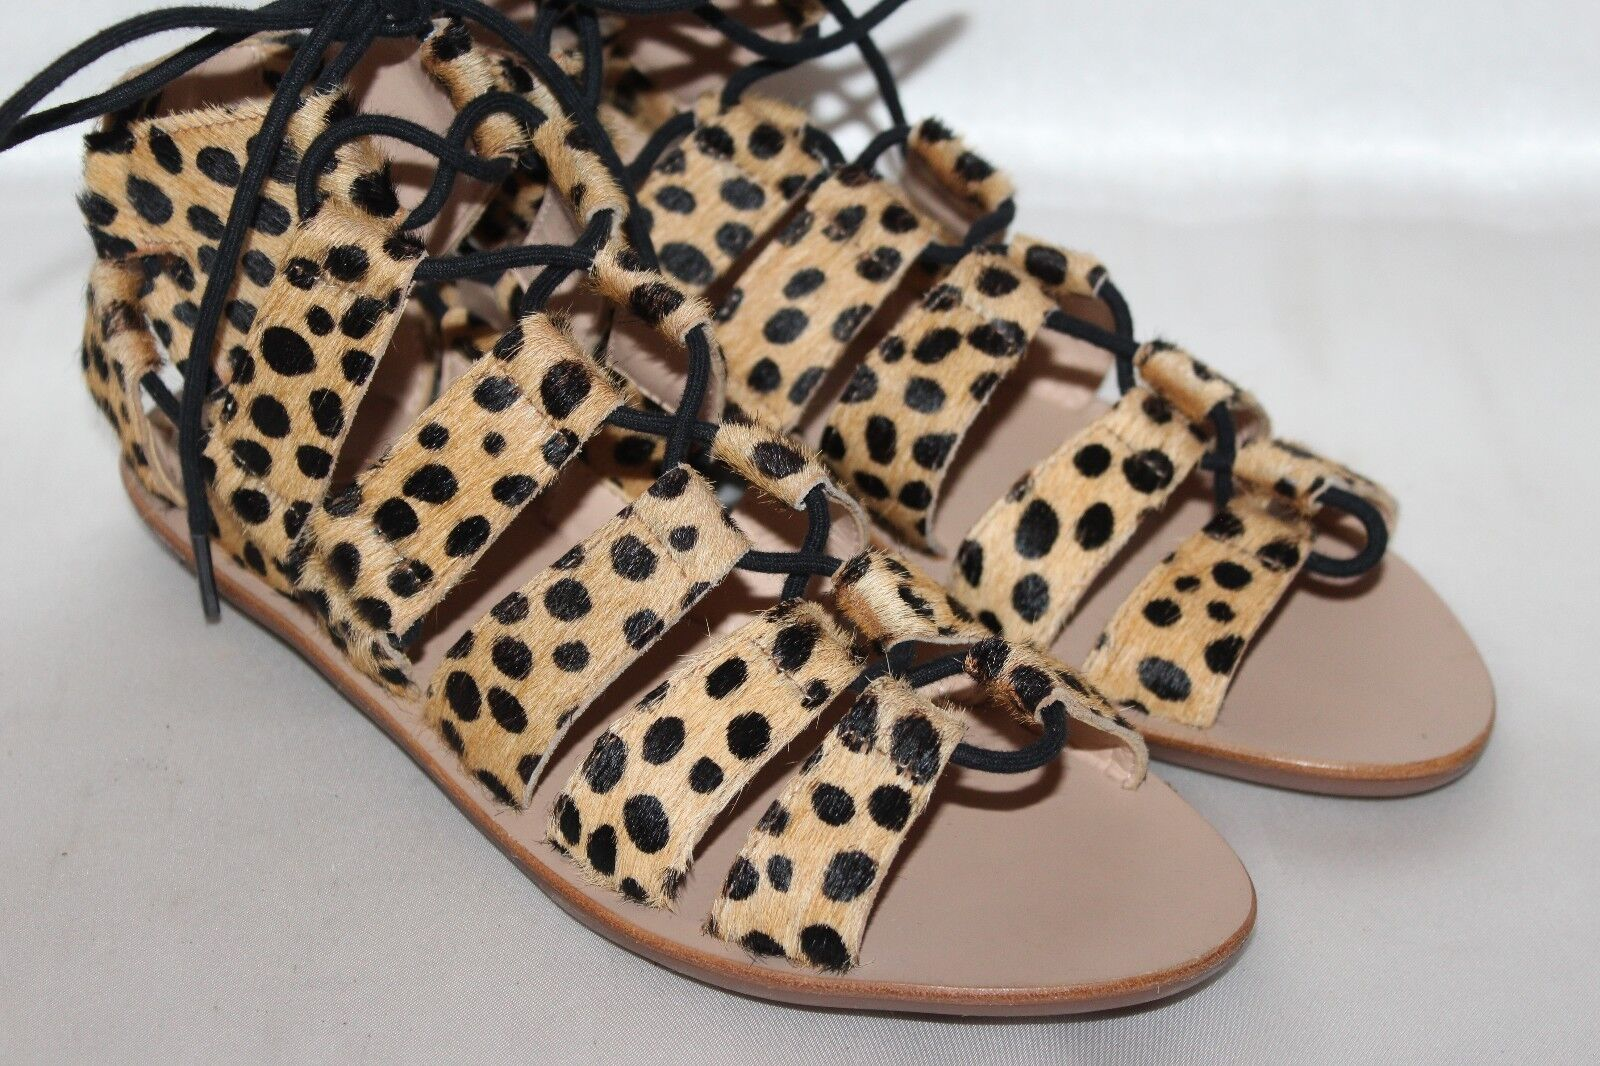 NEW  JOIE Leopard Caged Calf Hair Leder SKYE Caged Leopard Lace Up Gladiator Sandales 6 250 f765f0